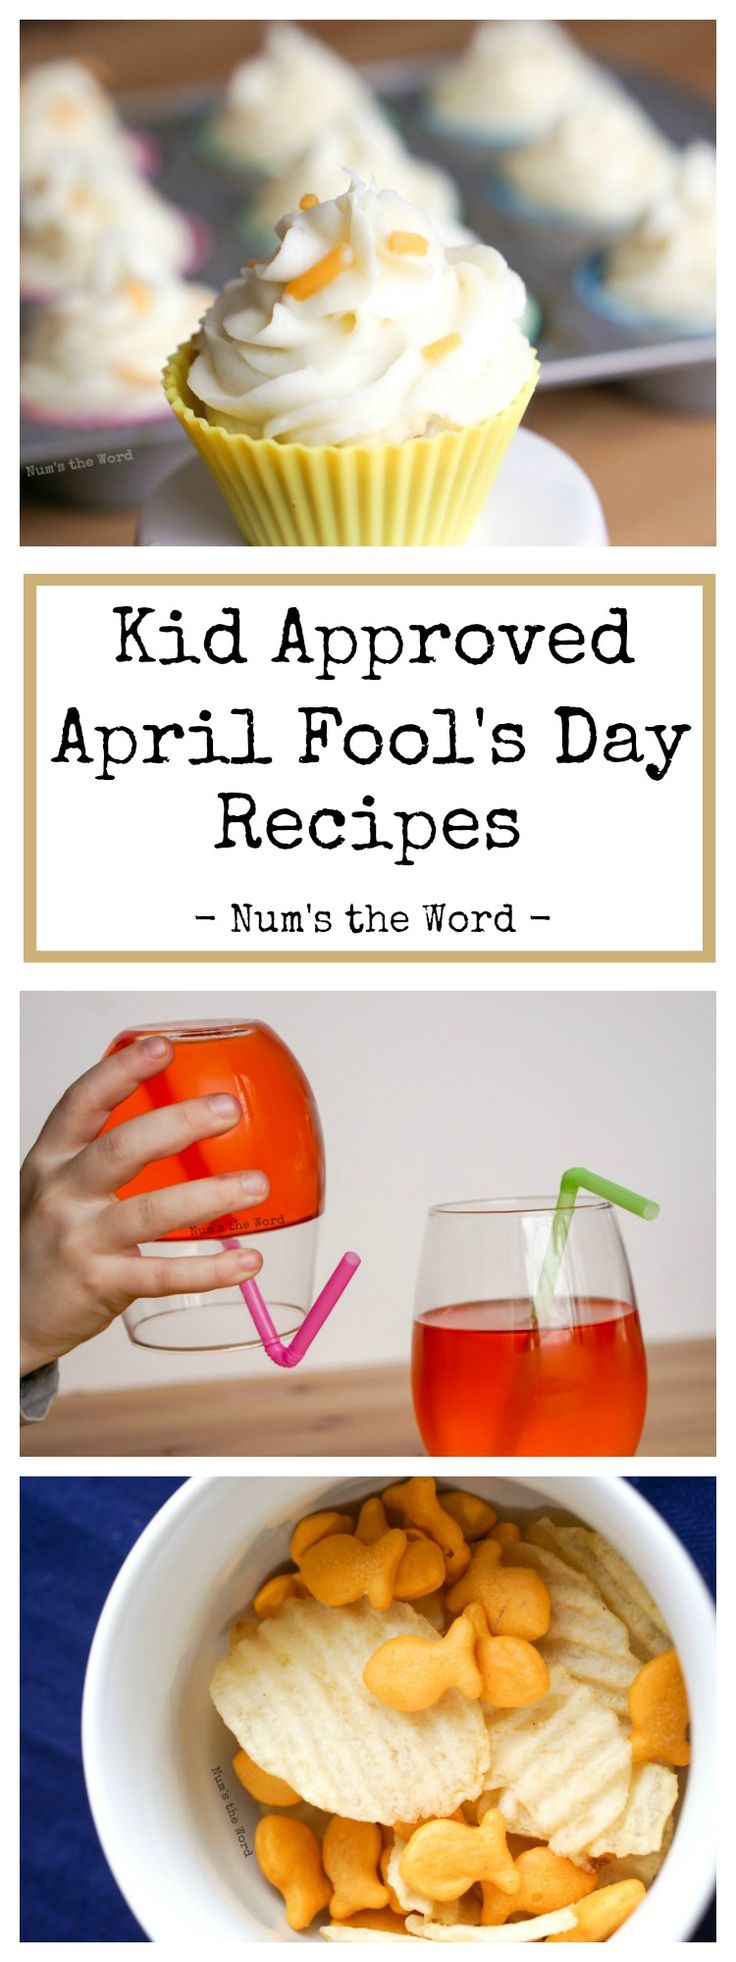 These Kid Approved April Fool's Day Recipes are easy to make a sure to trick your kids! Have fun and be creative with these fun trick recipes!